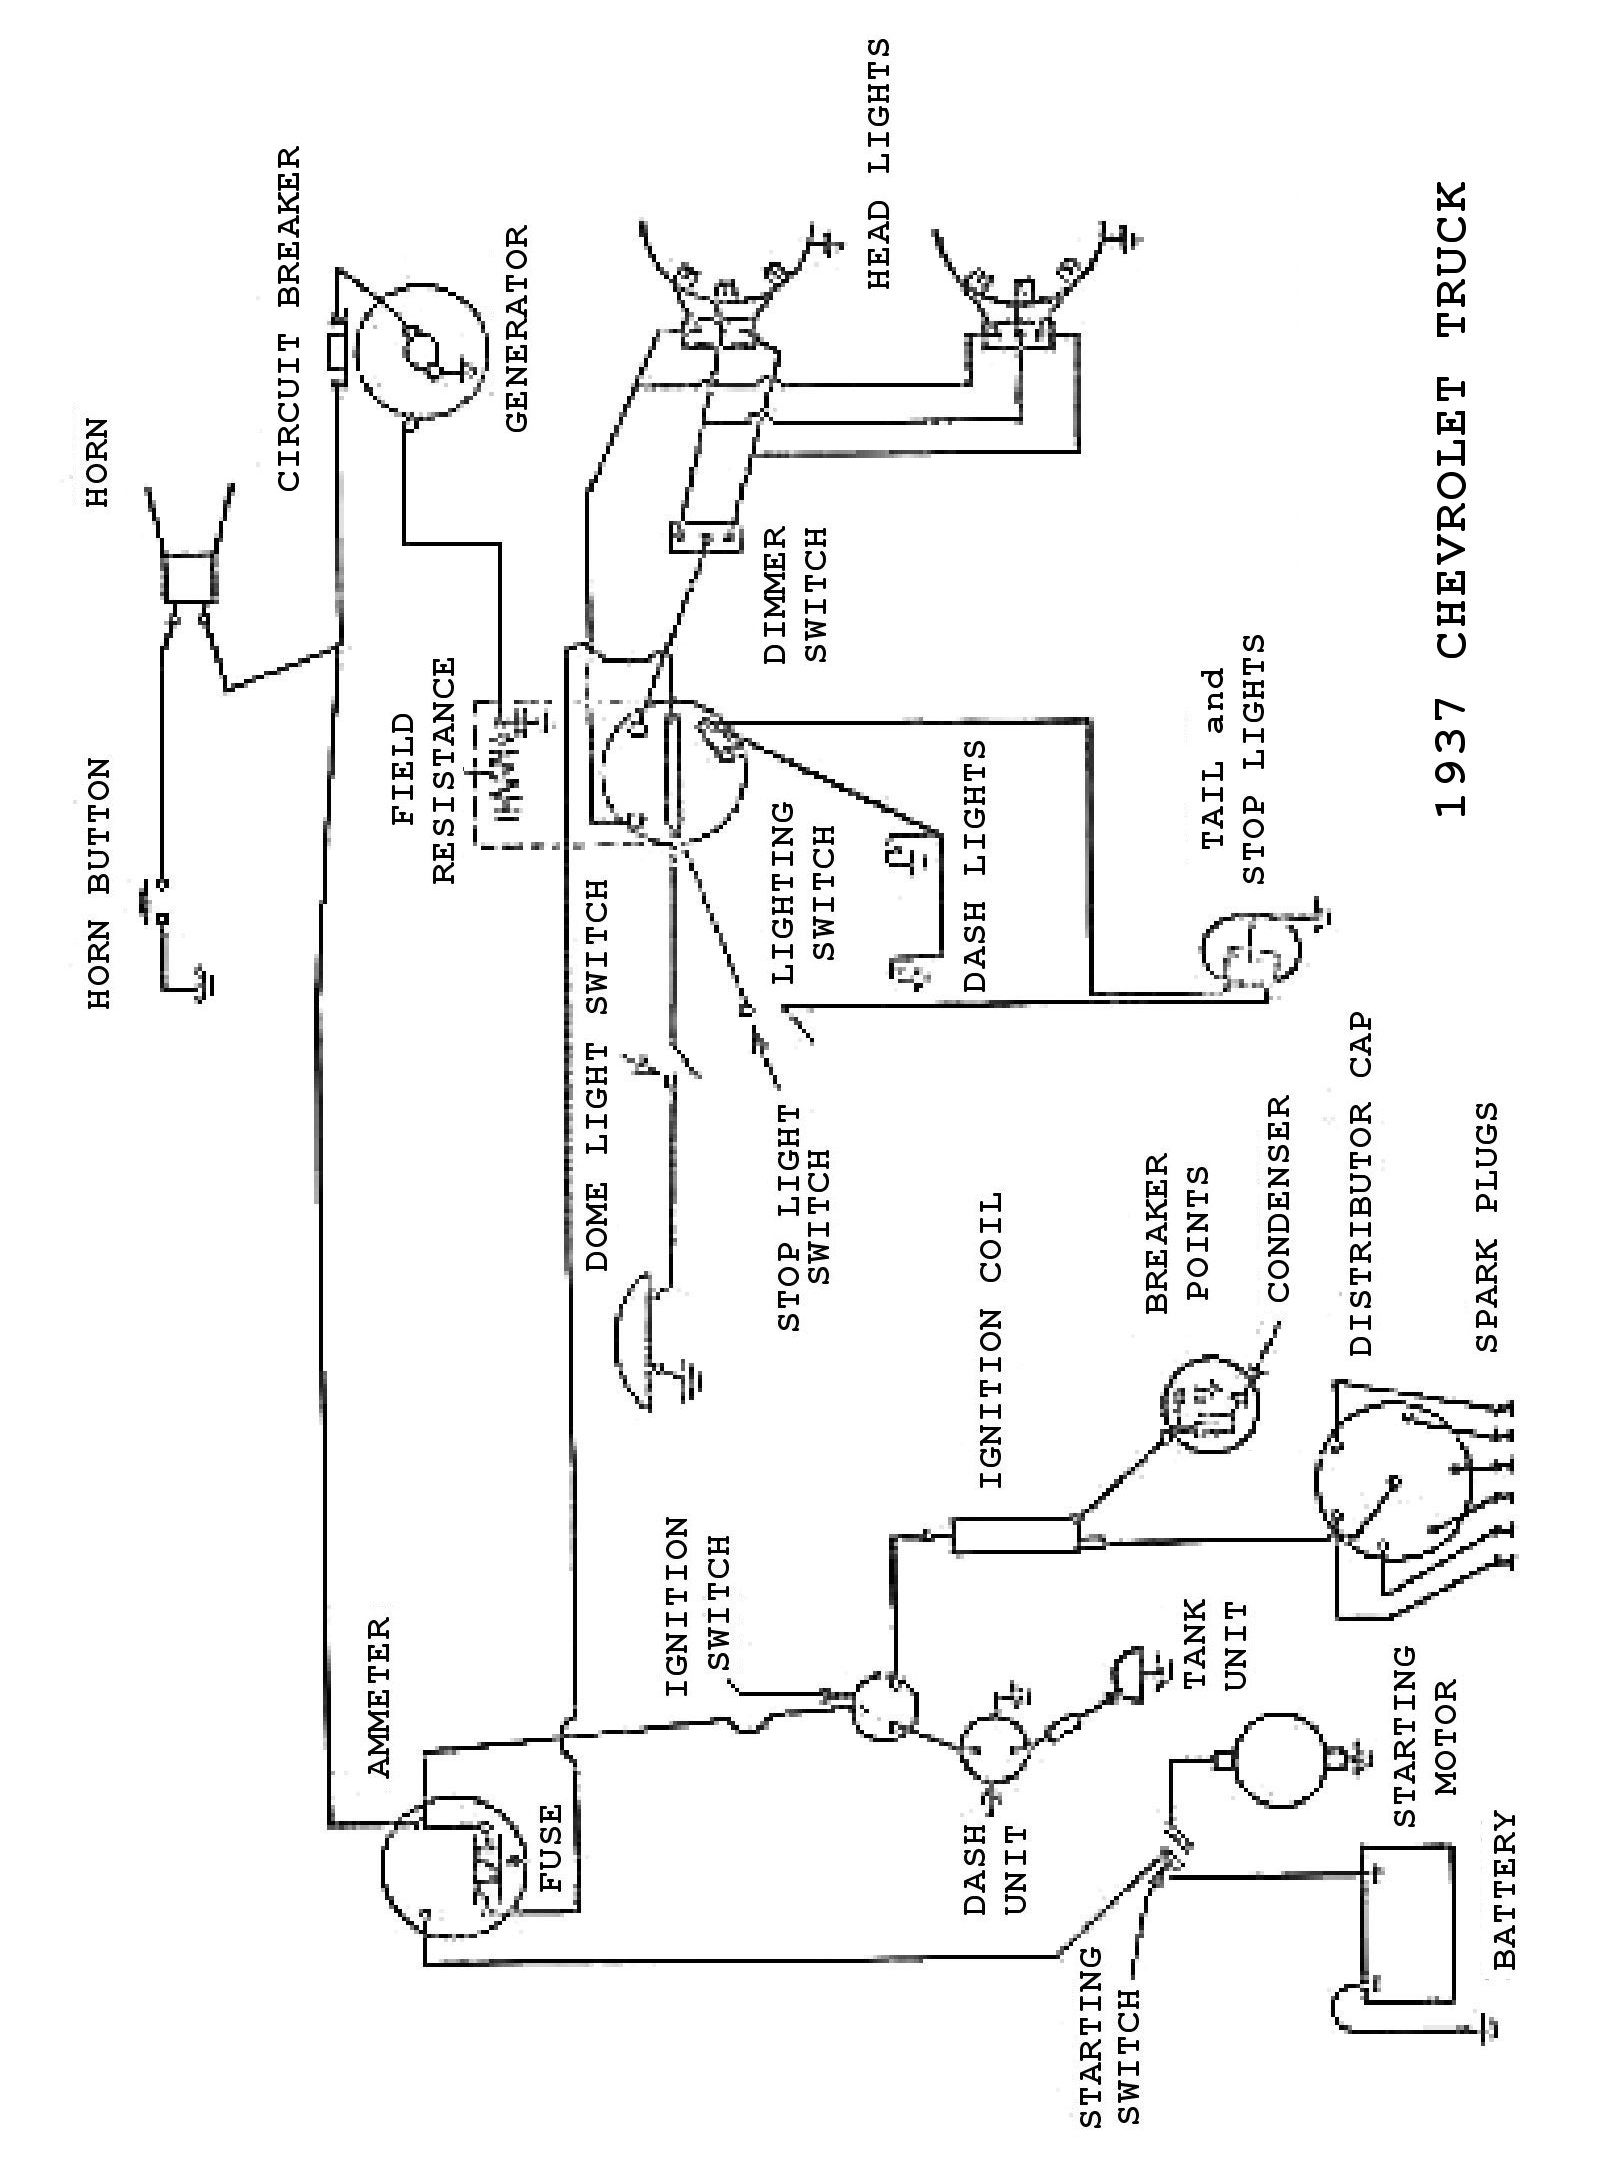 37truck chevy wiring diagrams Dimmer Switch Installation Diagram at crackthecode.co